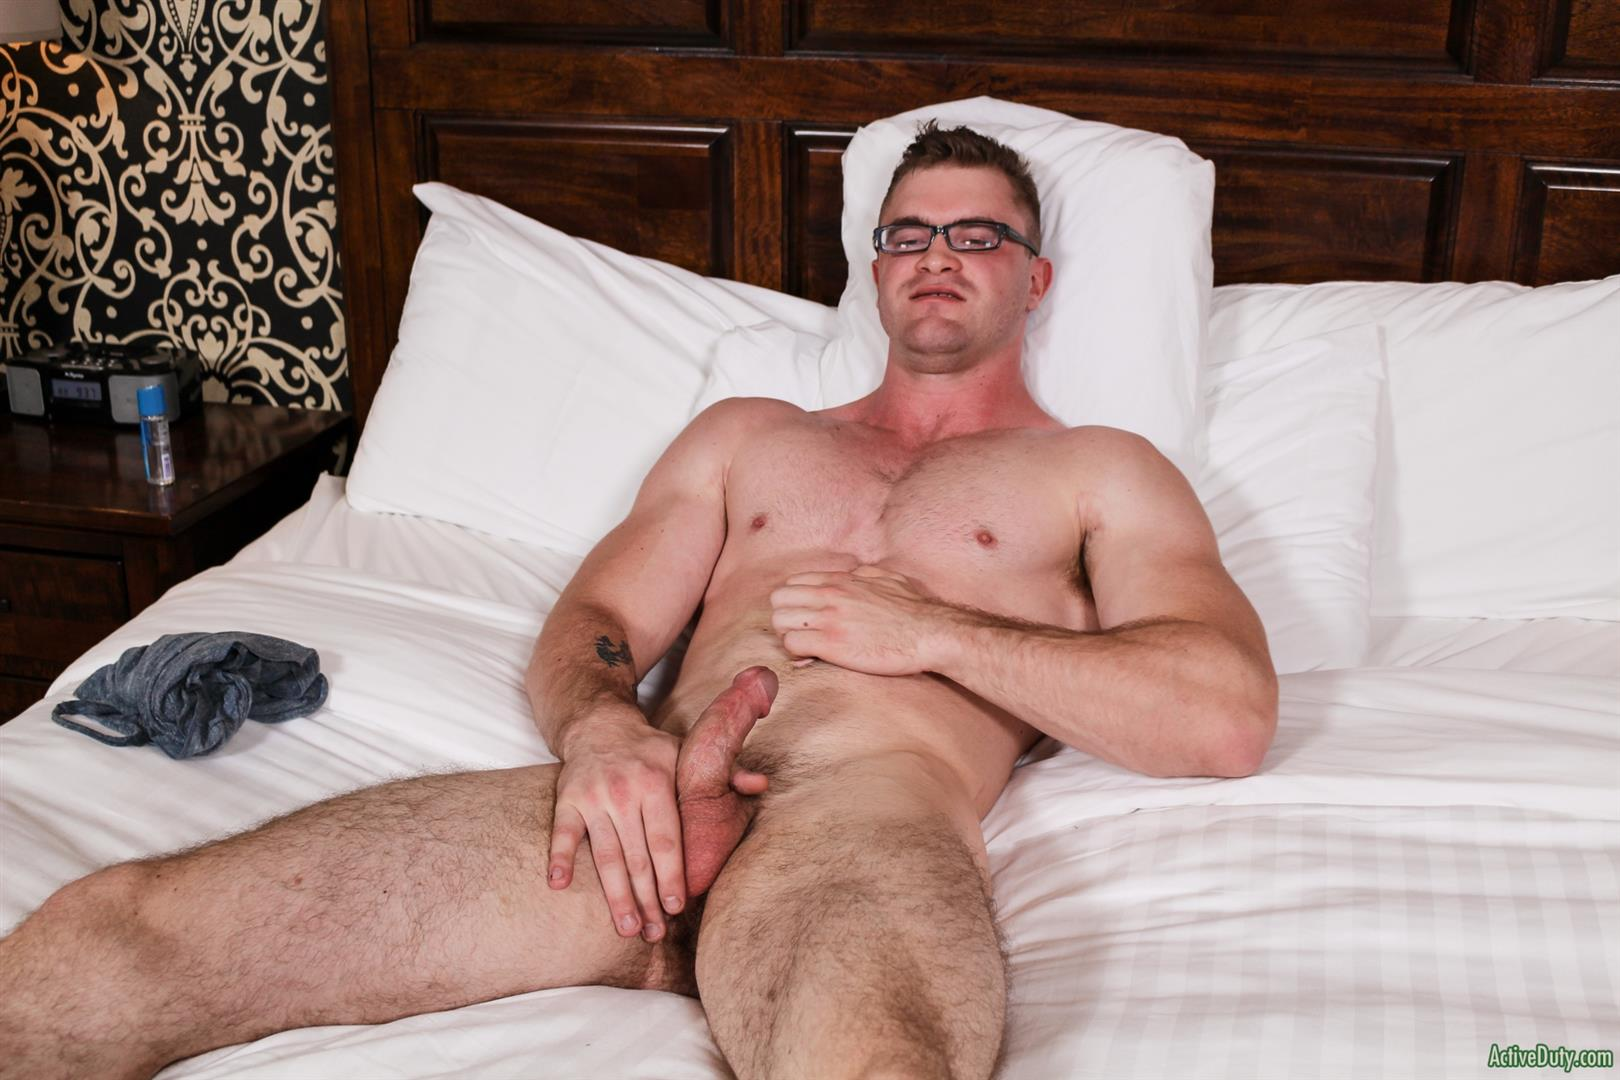 Active Duty Scott Ambrose Muscle Naked Marine Jerking Off Amateur Gay Porn 12 Hairy Muscular American Marine Jerks His Thick Cock